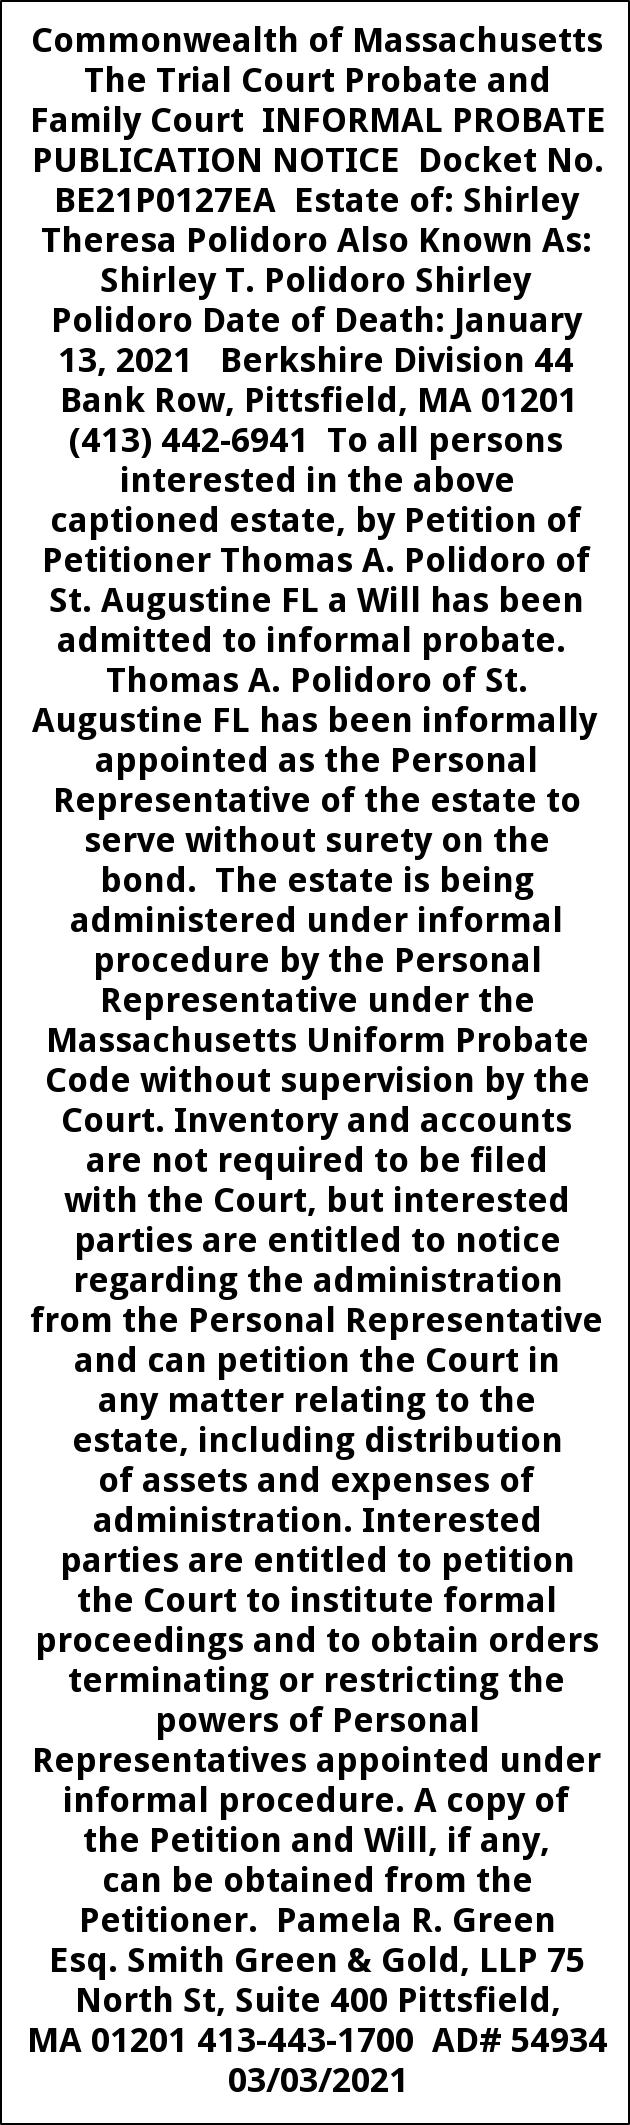 Probate Publication Notice